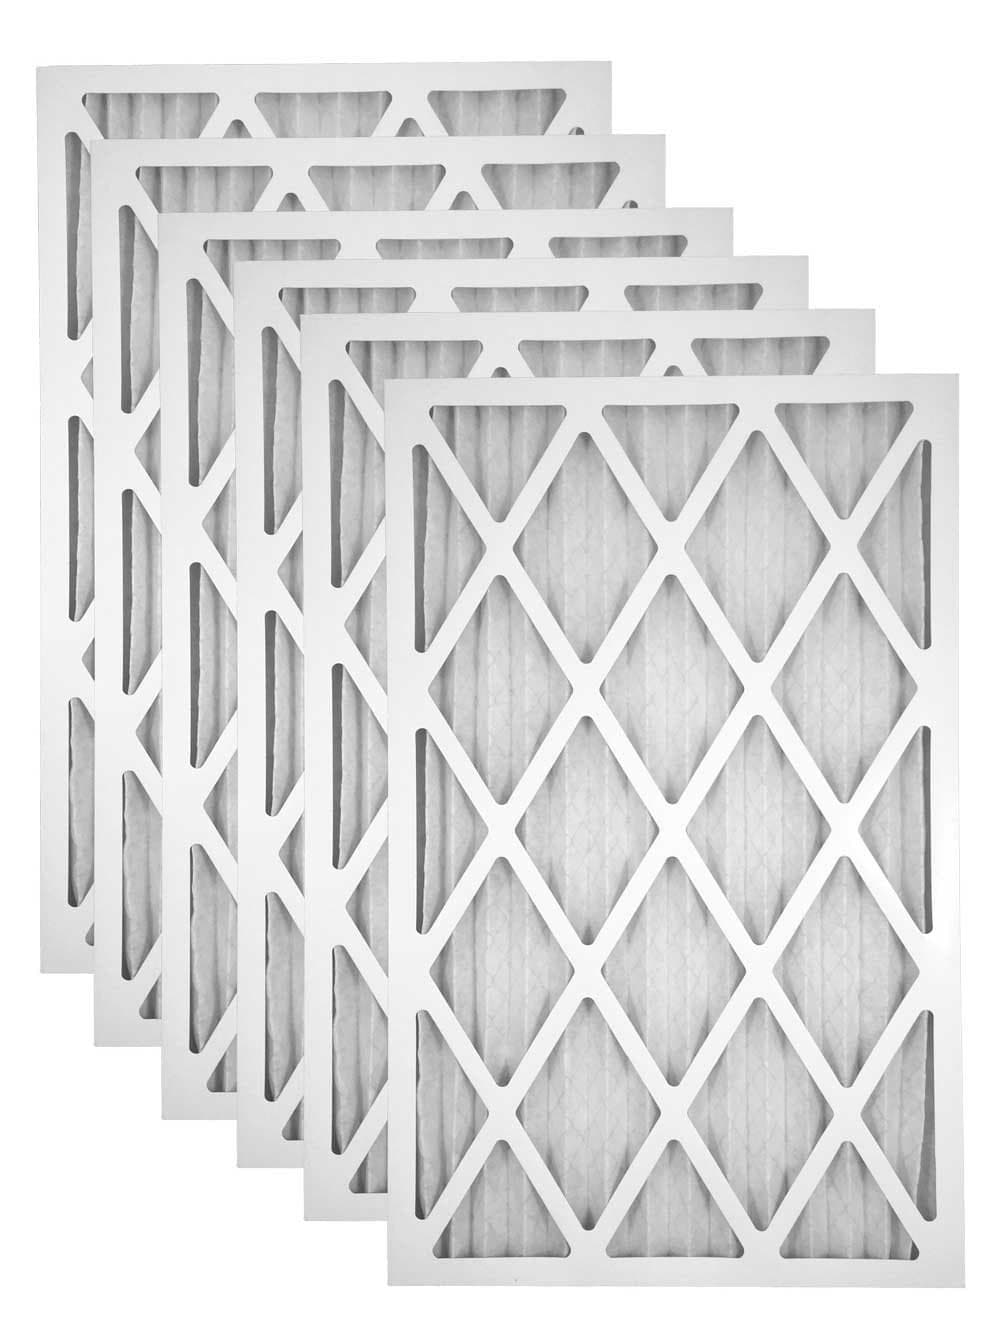 16x18x1 Merv 11 Pleated AC Furnace Filter - Case of 6